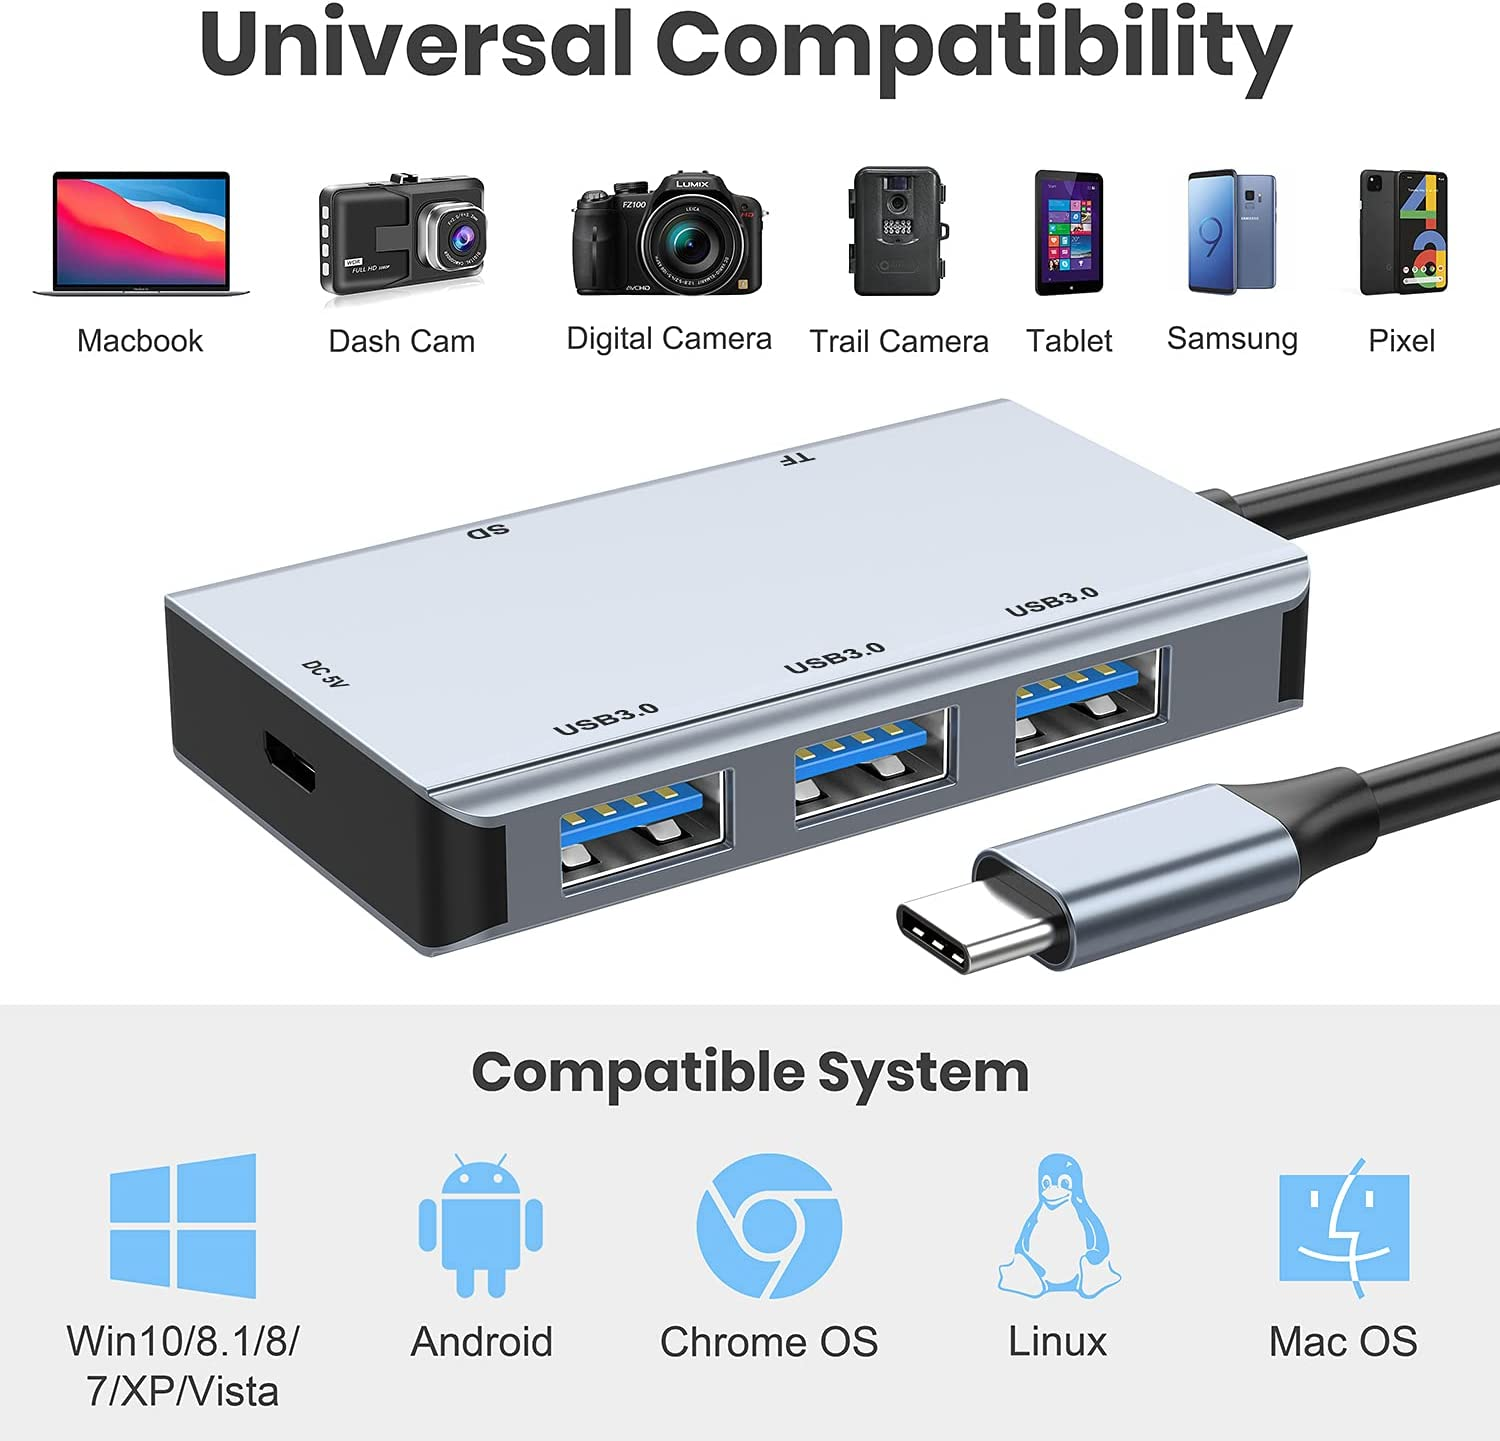 USB C to SD Card Reader, Vilcome Type C to SD Card Reader Adapter with 3 USB 3.0 Port & 5V Power Suply, 2TB Capacity Memory Card for MacBook Camera Android Windows Linux and Other Type C Device